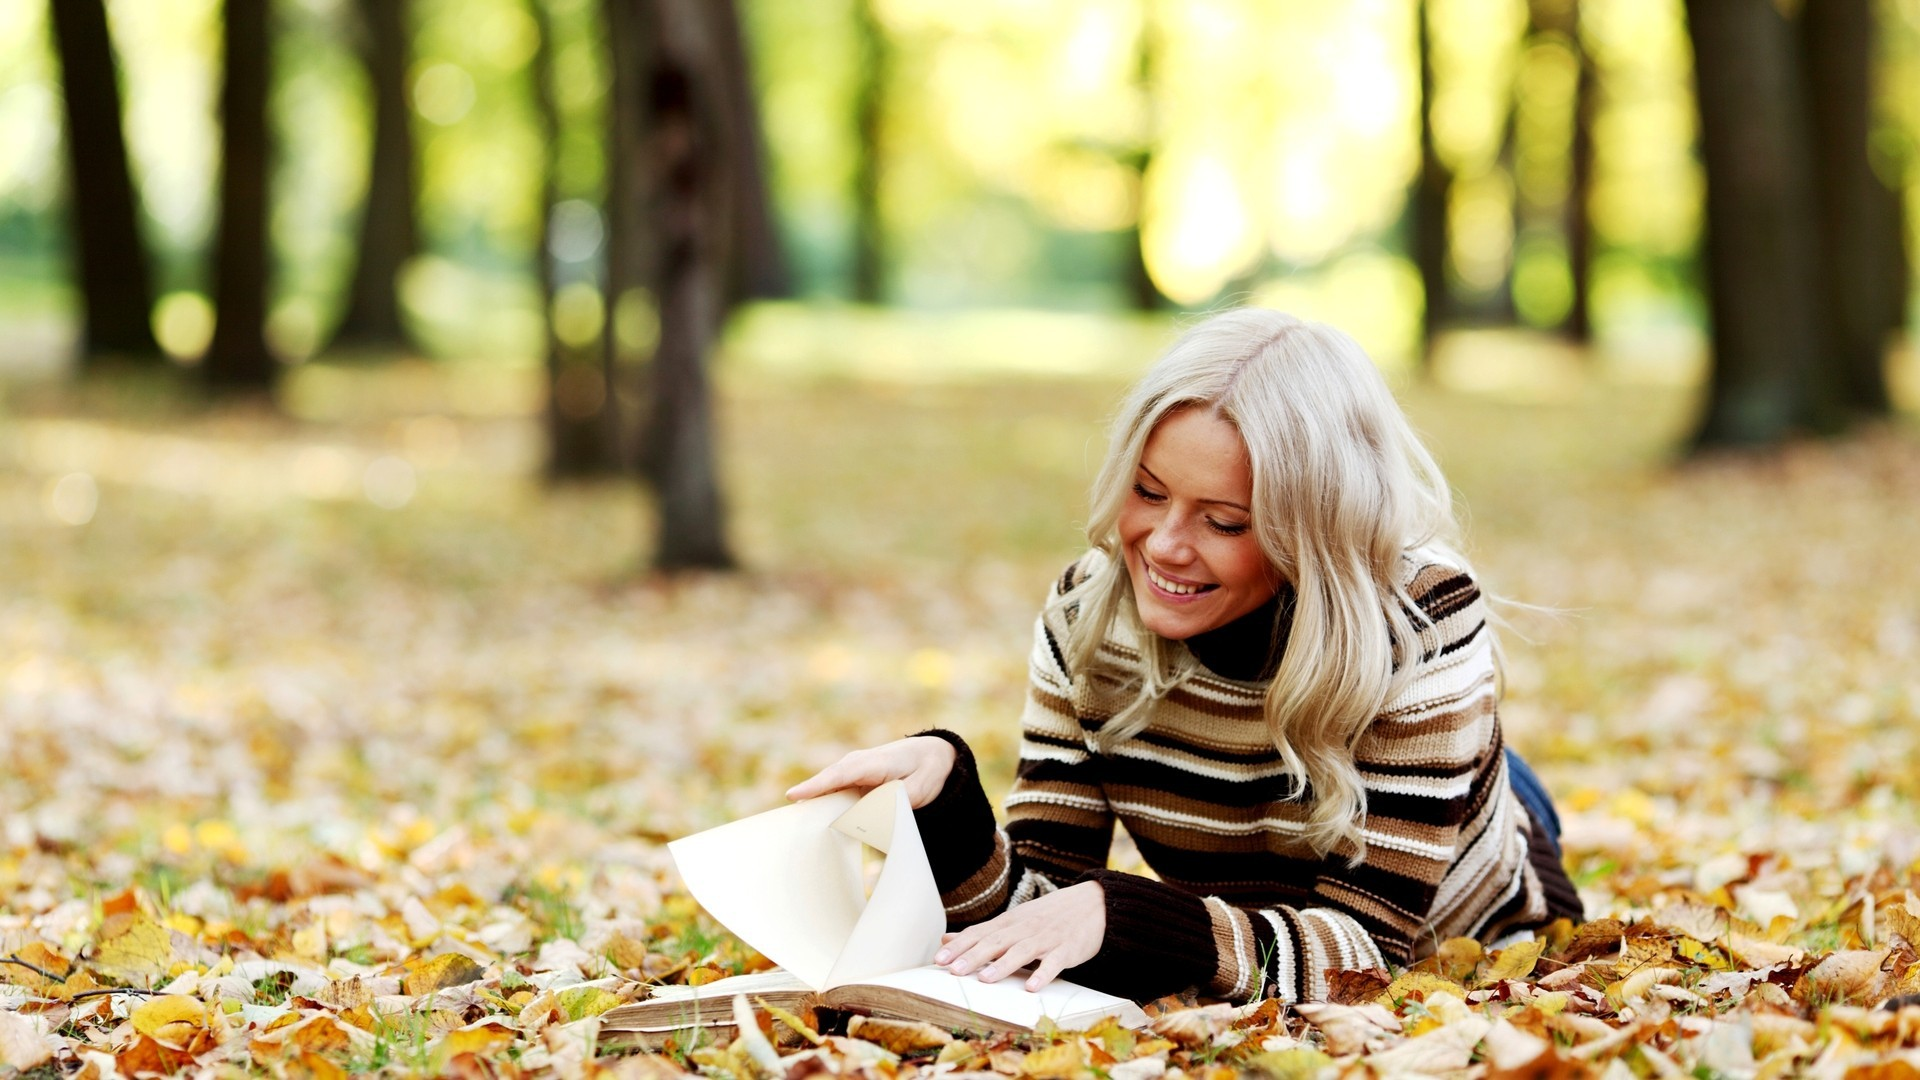 Love Girl Reading Wallpaper : Trees leaves reading smiling sweater parks autumn wallpaper AllWallpaper.in #188 Pc en